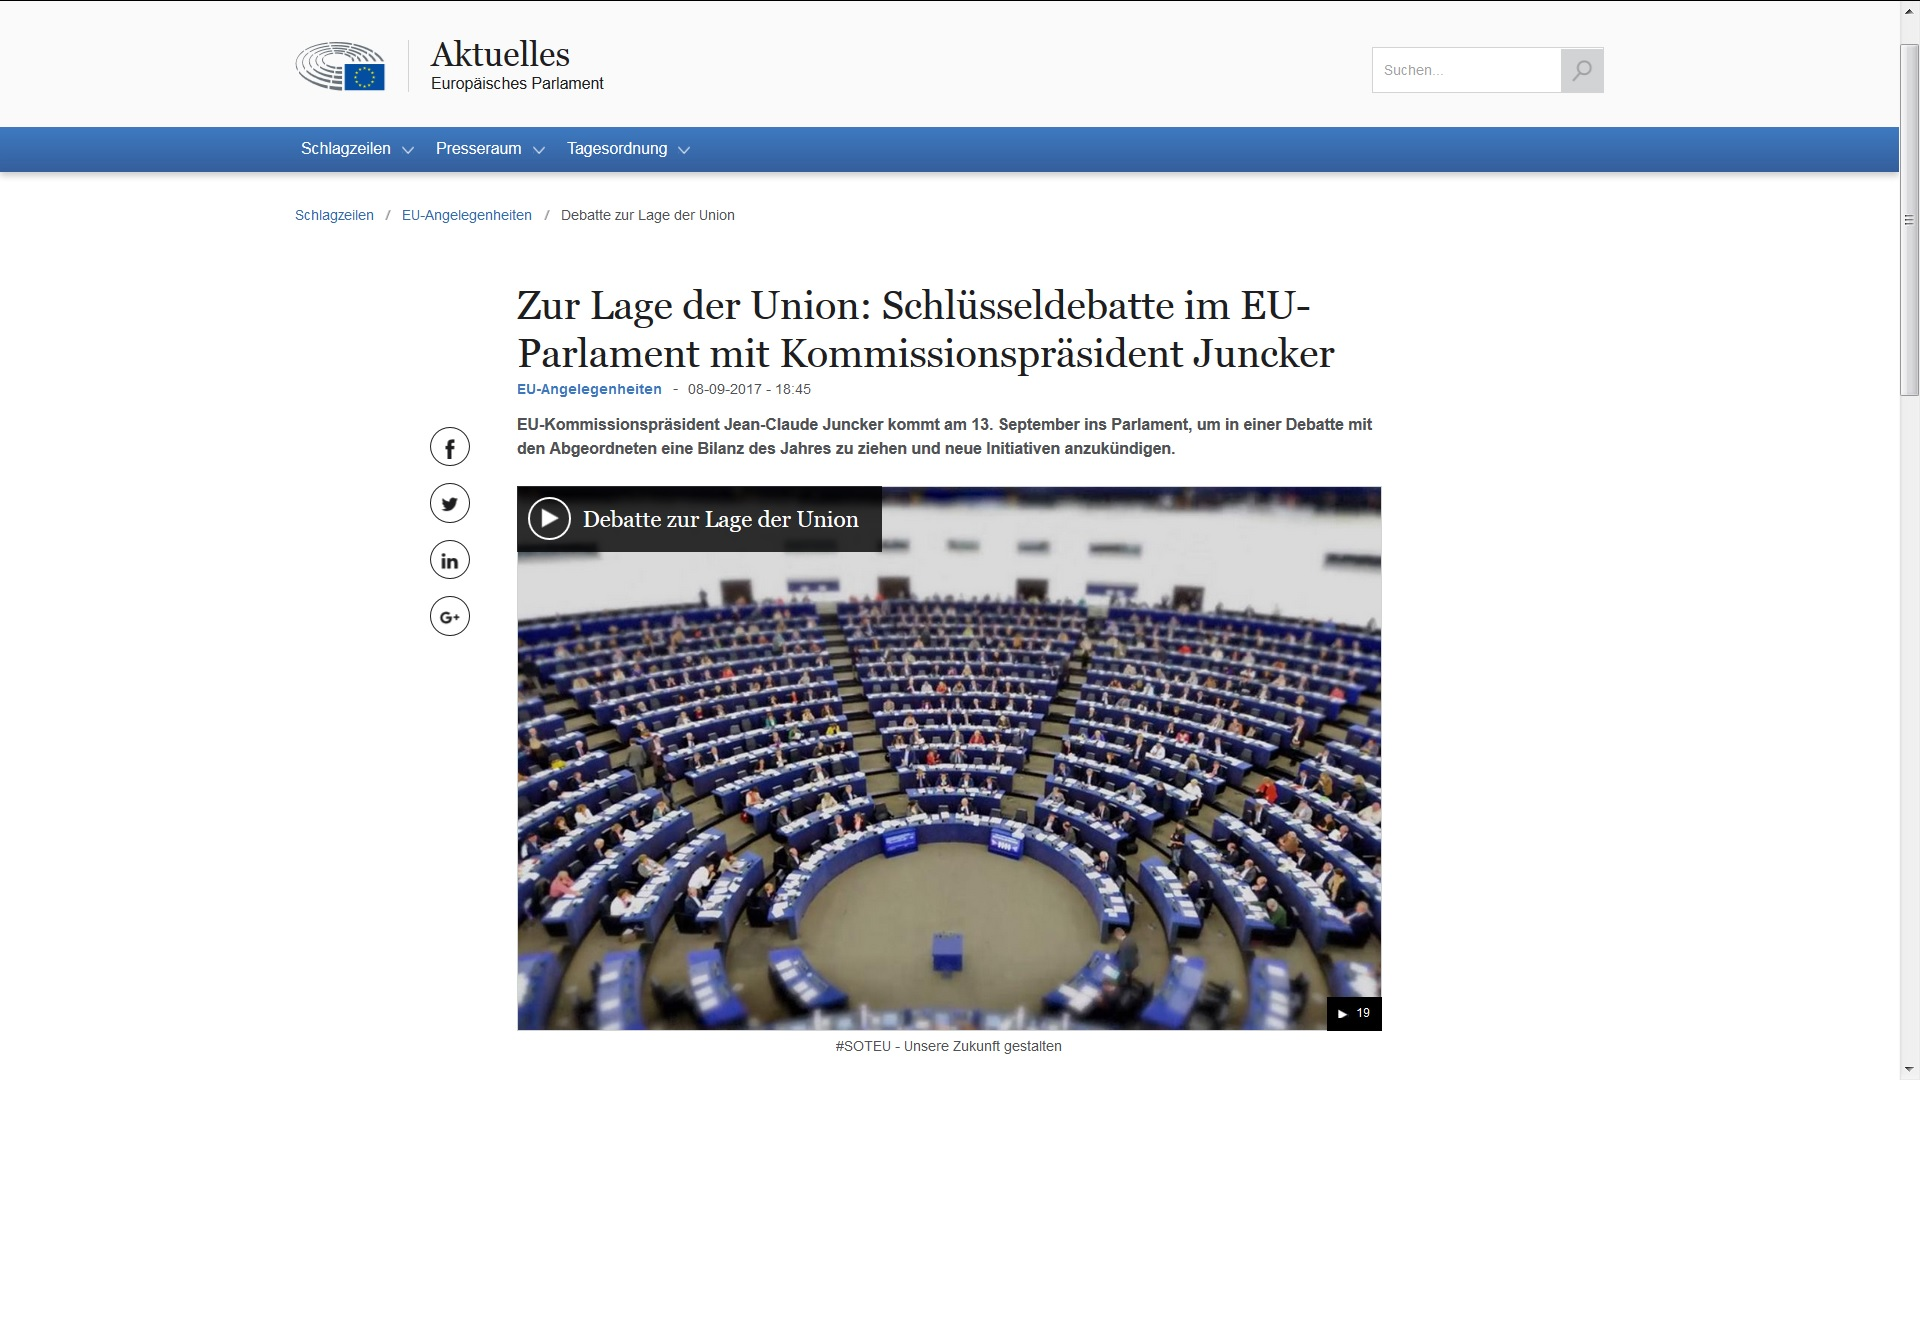 Screenshot SOTEU - Rede zur Lage der Union